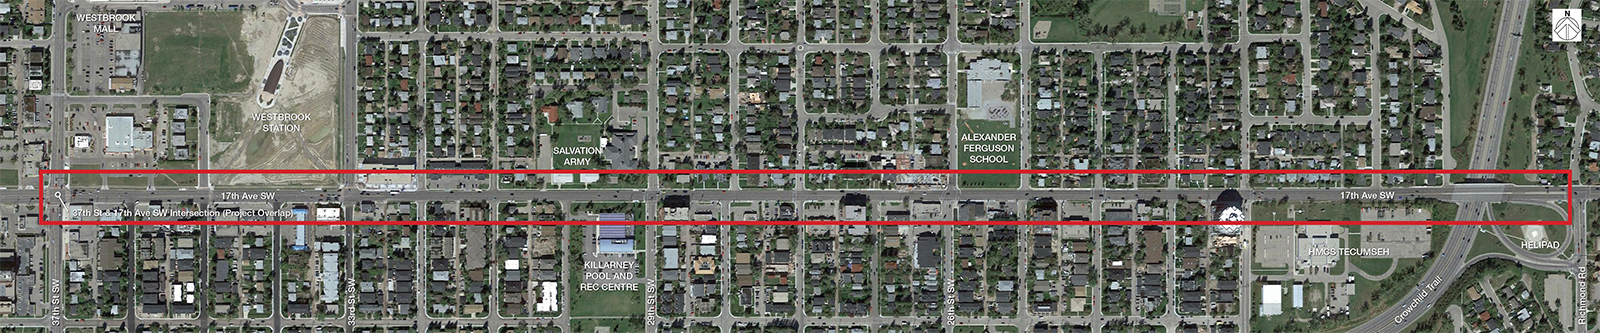 Map of the planning area, 17 Avenue S.W. from Crowchild Trail to 37 Street S.W.